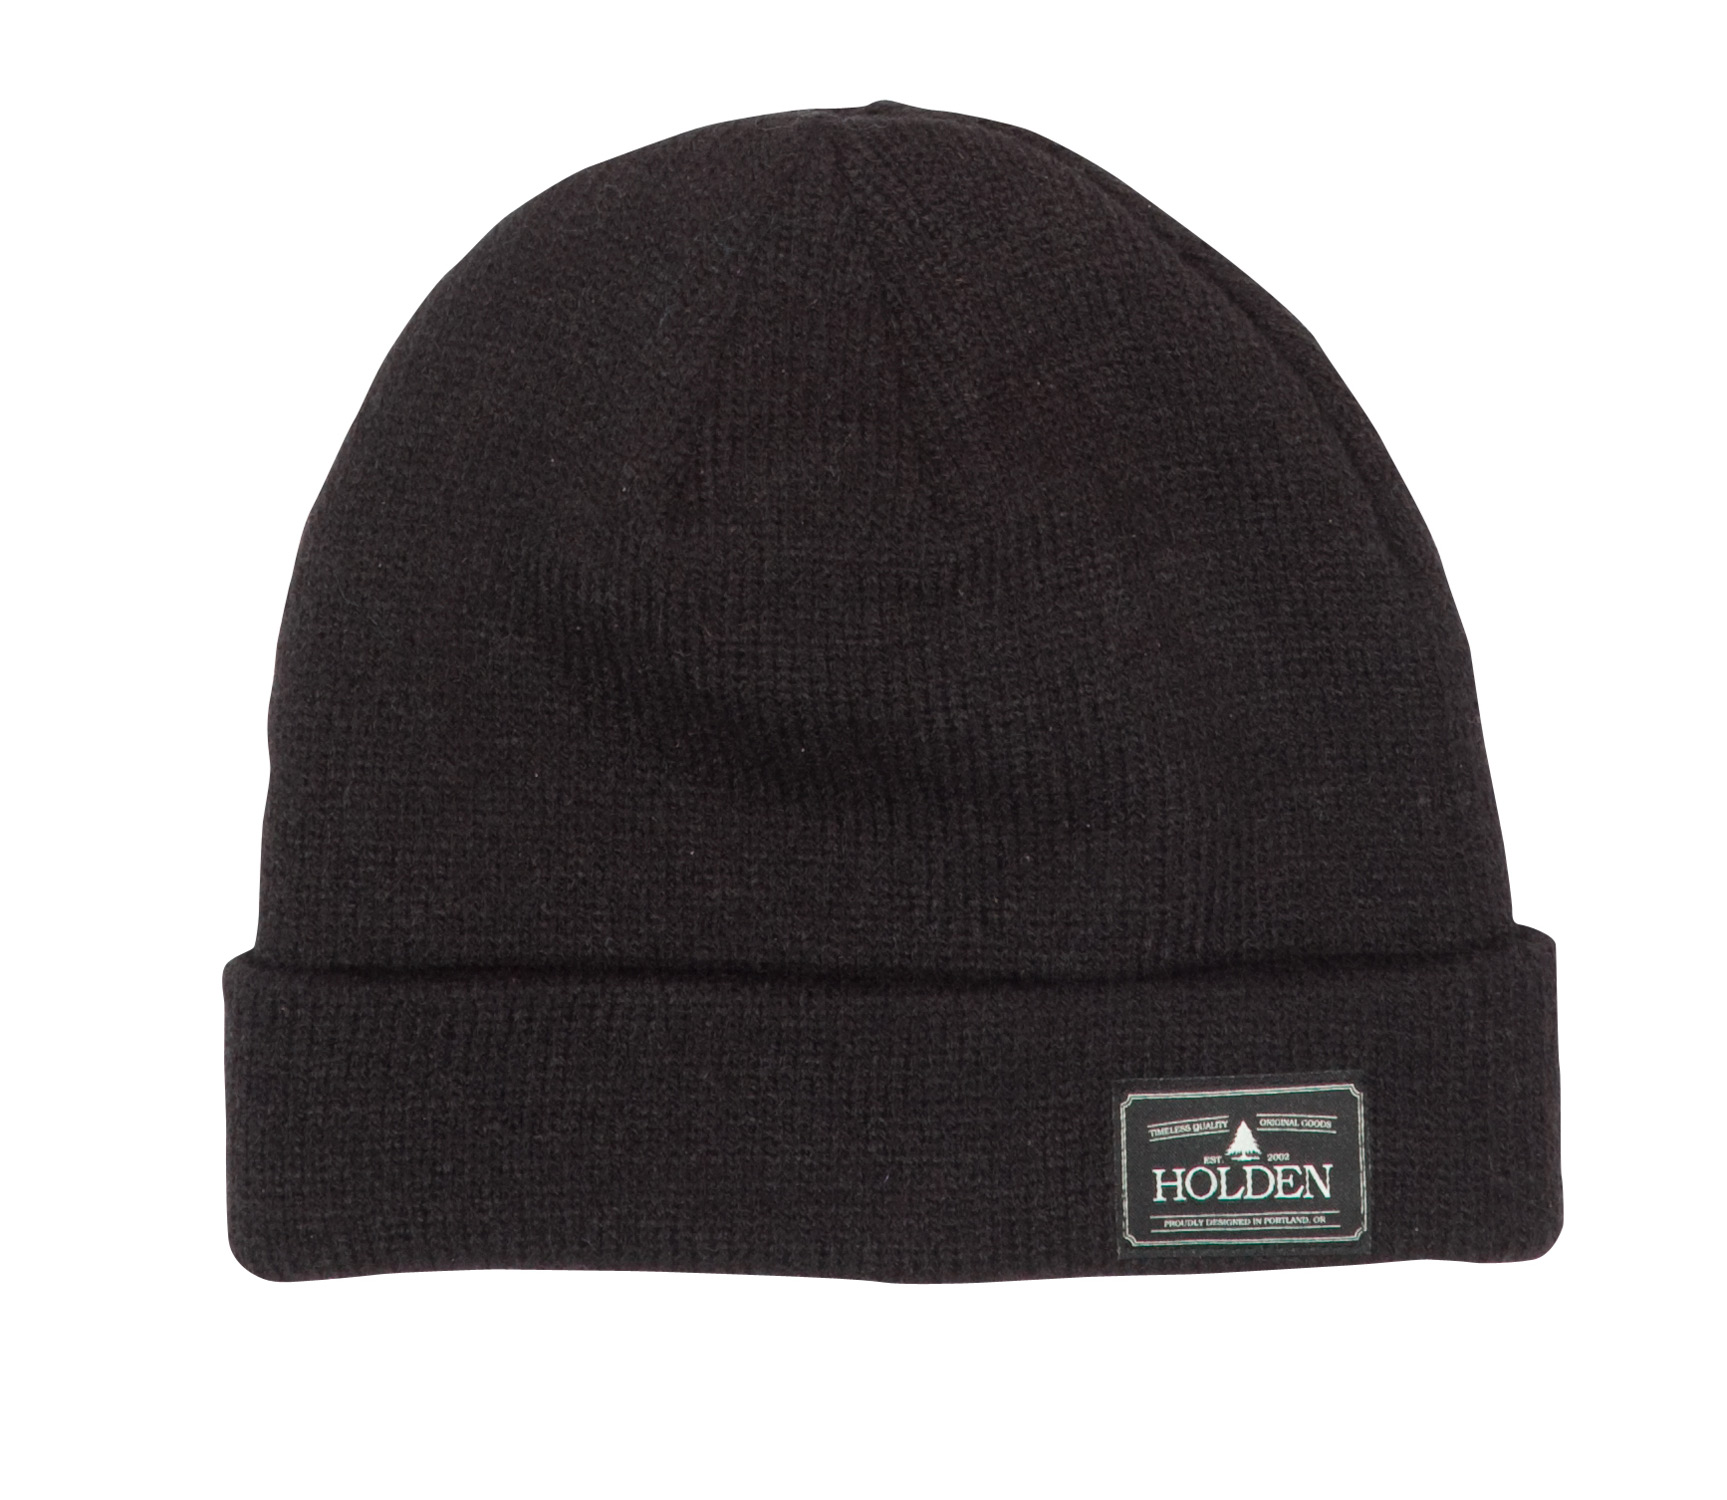 Key Features of the Holden Cuffed Classic Beanie: Light weight double layer classic fit cuffed hat Holden patch at cuff 100% Acrylic - $10.95